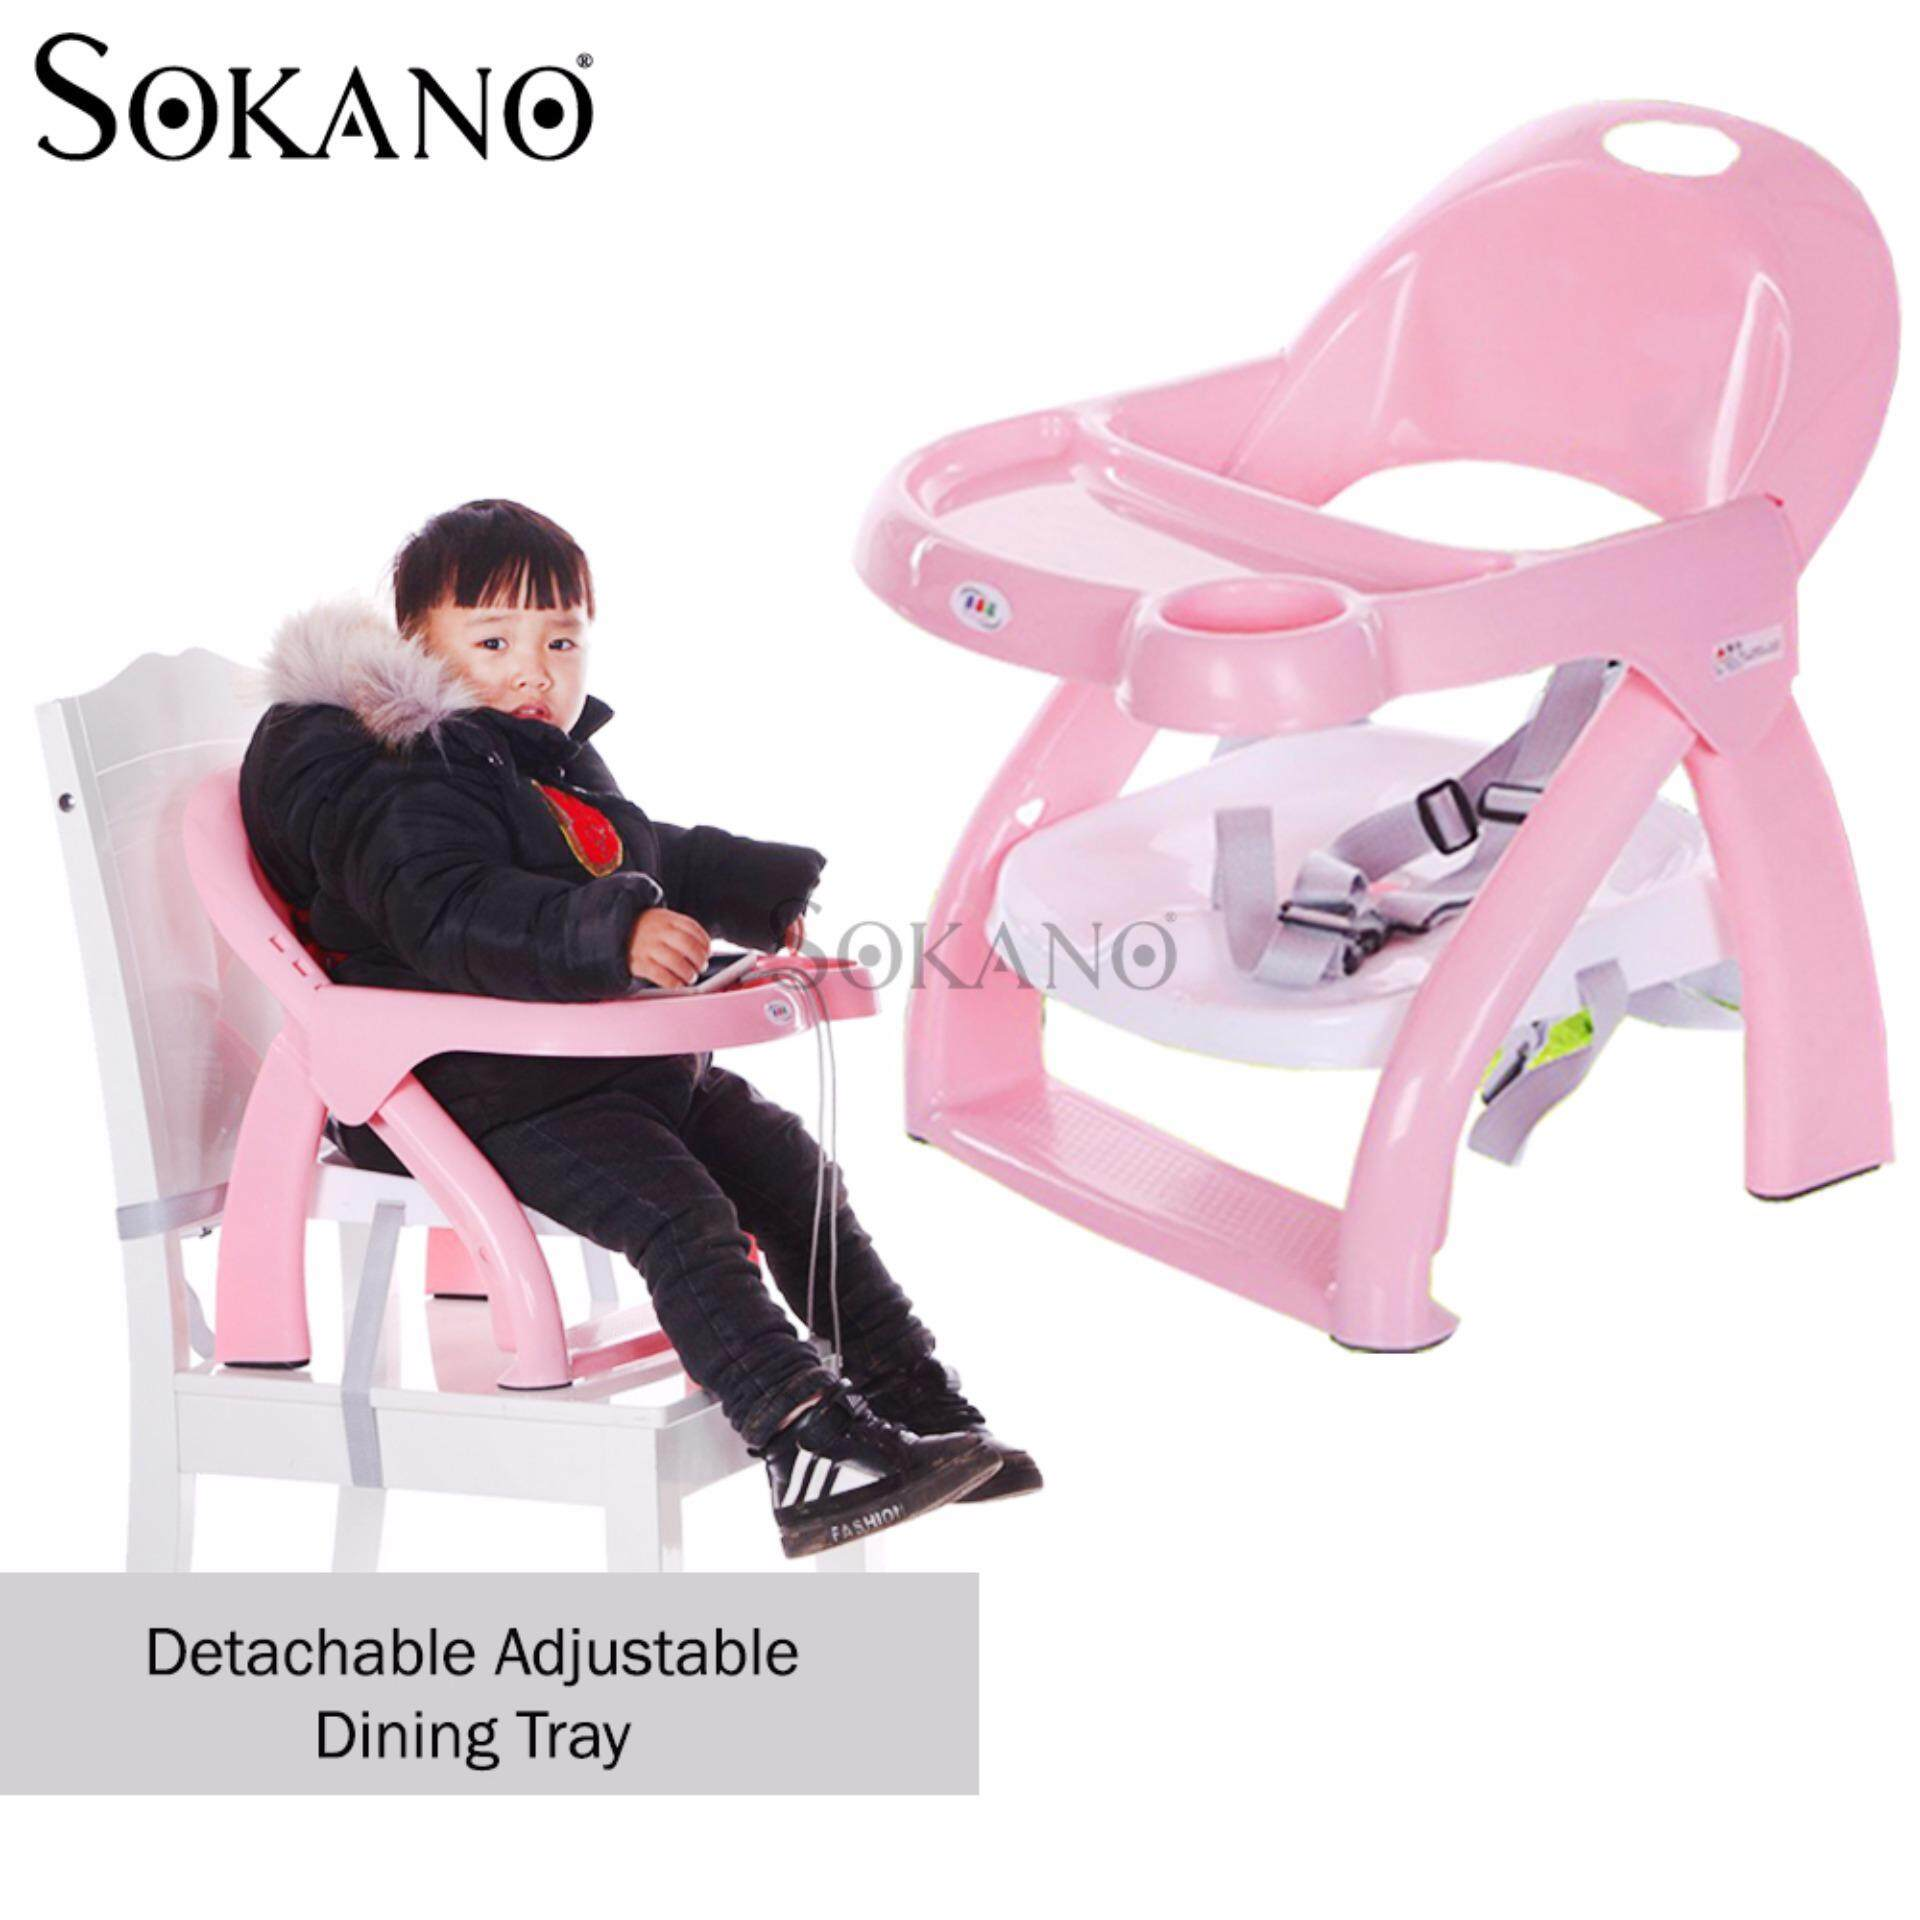 SOKANO Foldable Portable Lightweight Kid Dining Chair With Safety Belt and Detachable Adjustable Dining Tray - Pink